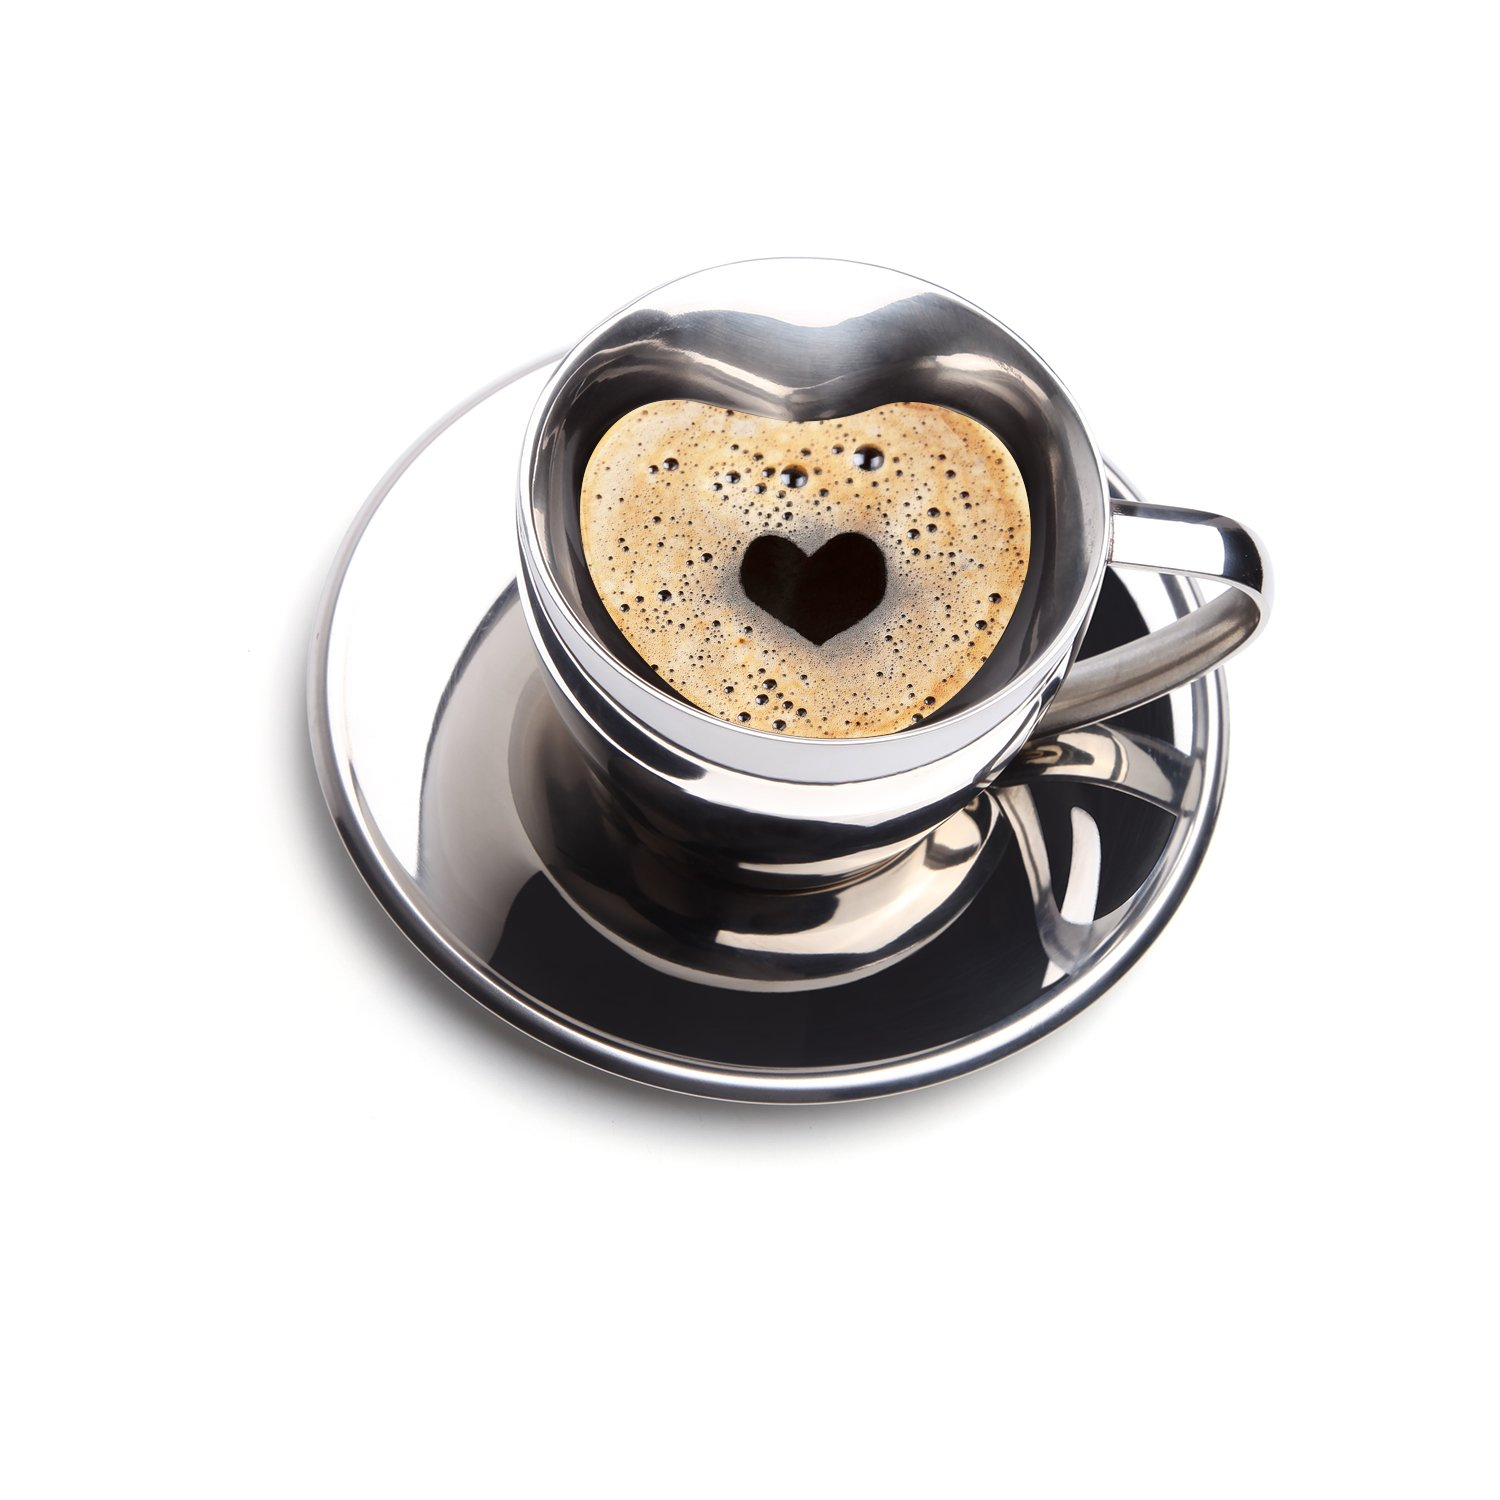 AMOVEE Coffee Cup Stainless Steel Heart Shape Double Walled Insulated Espresso, Milk, Cappuccino, Latte Cup with Saucer - 200ml